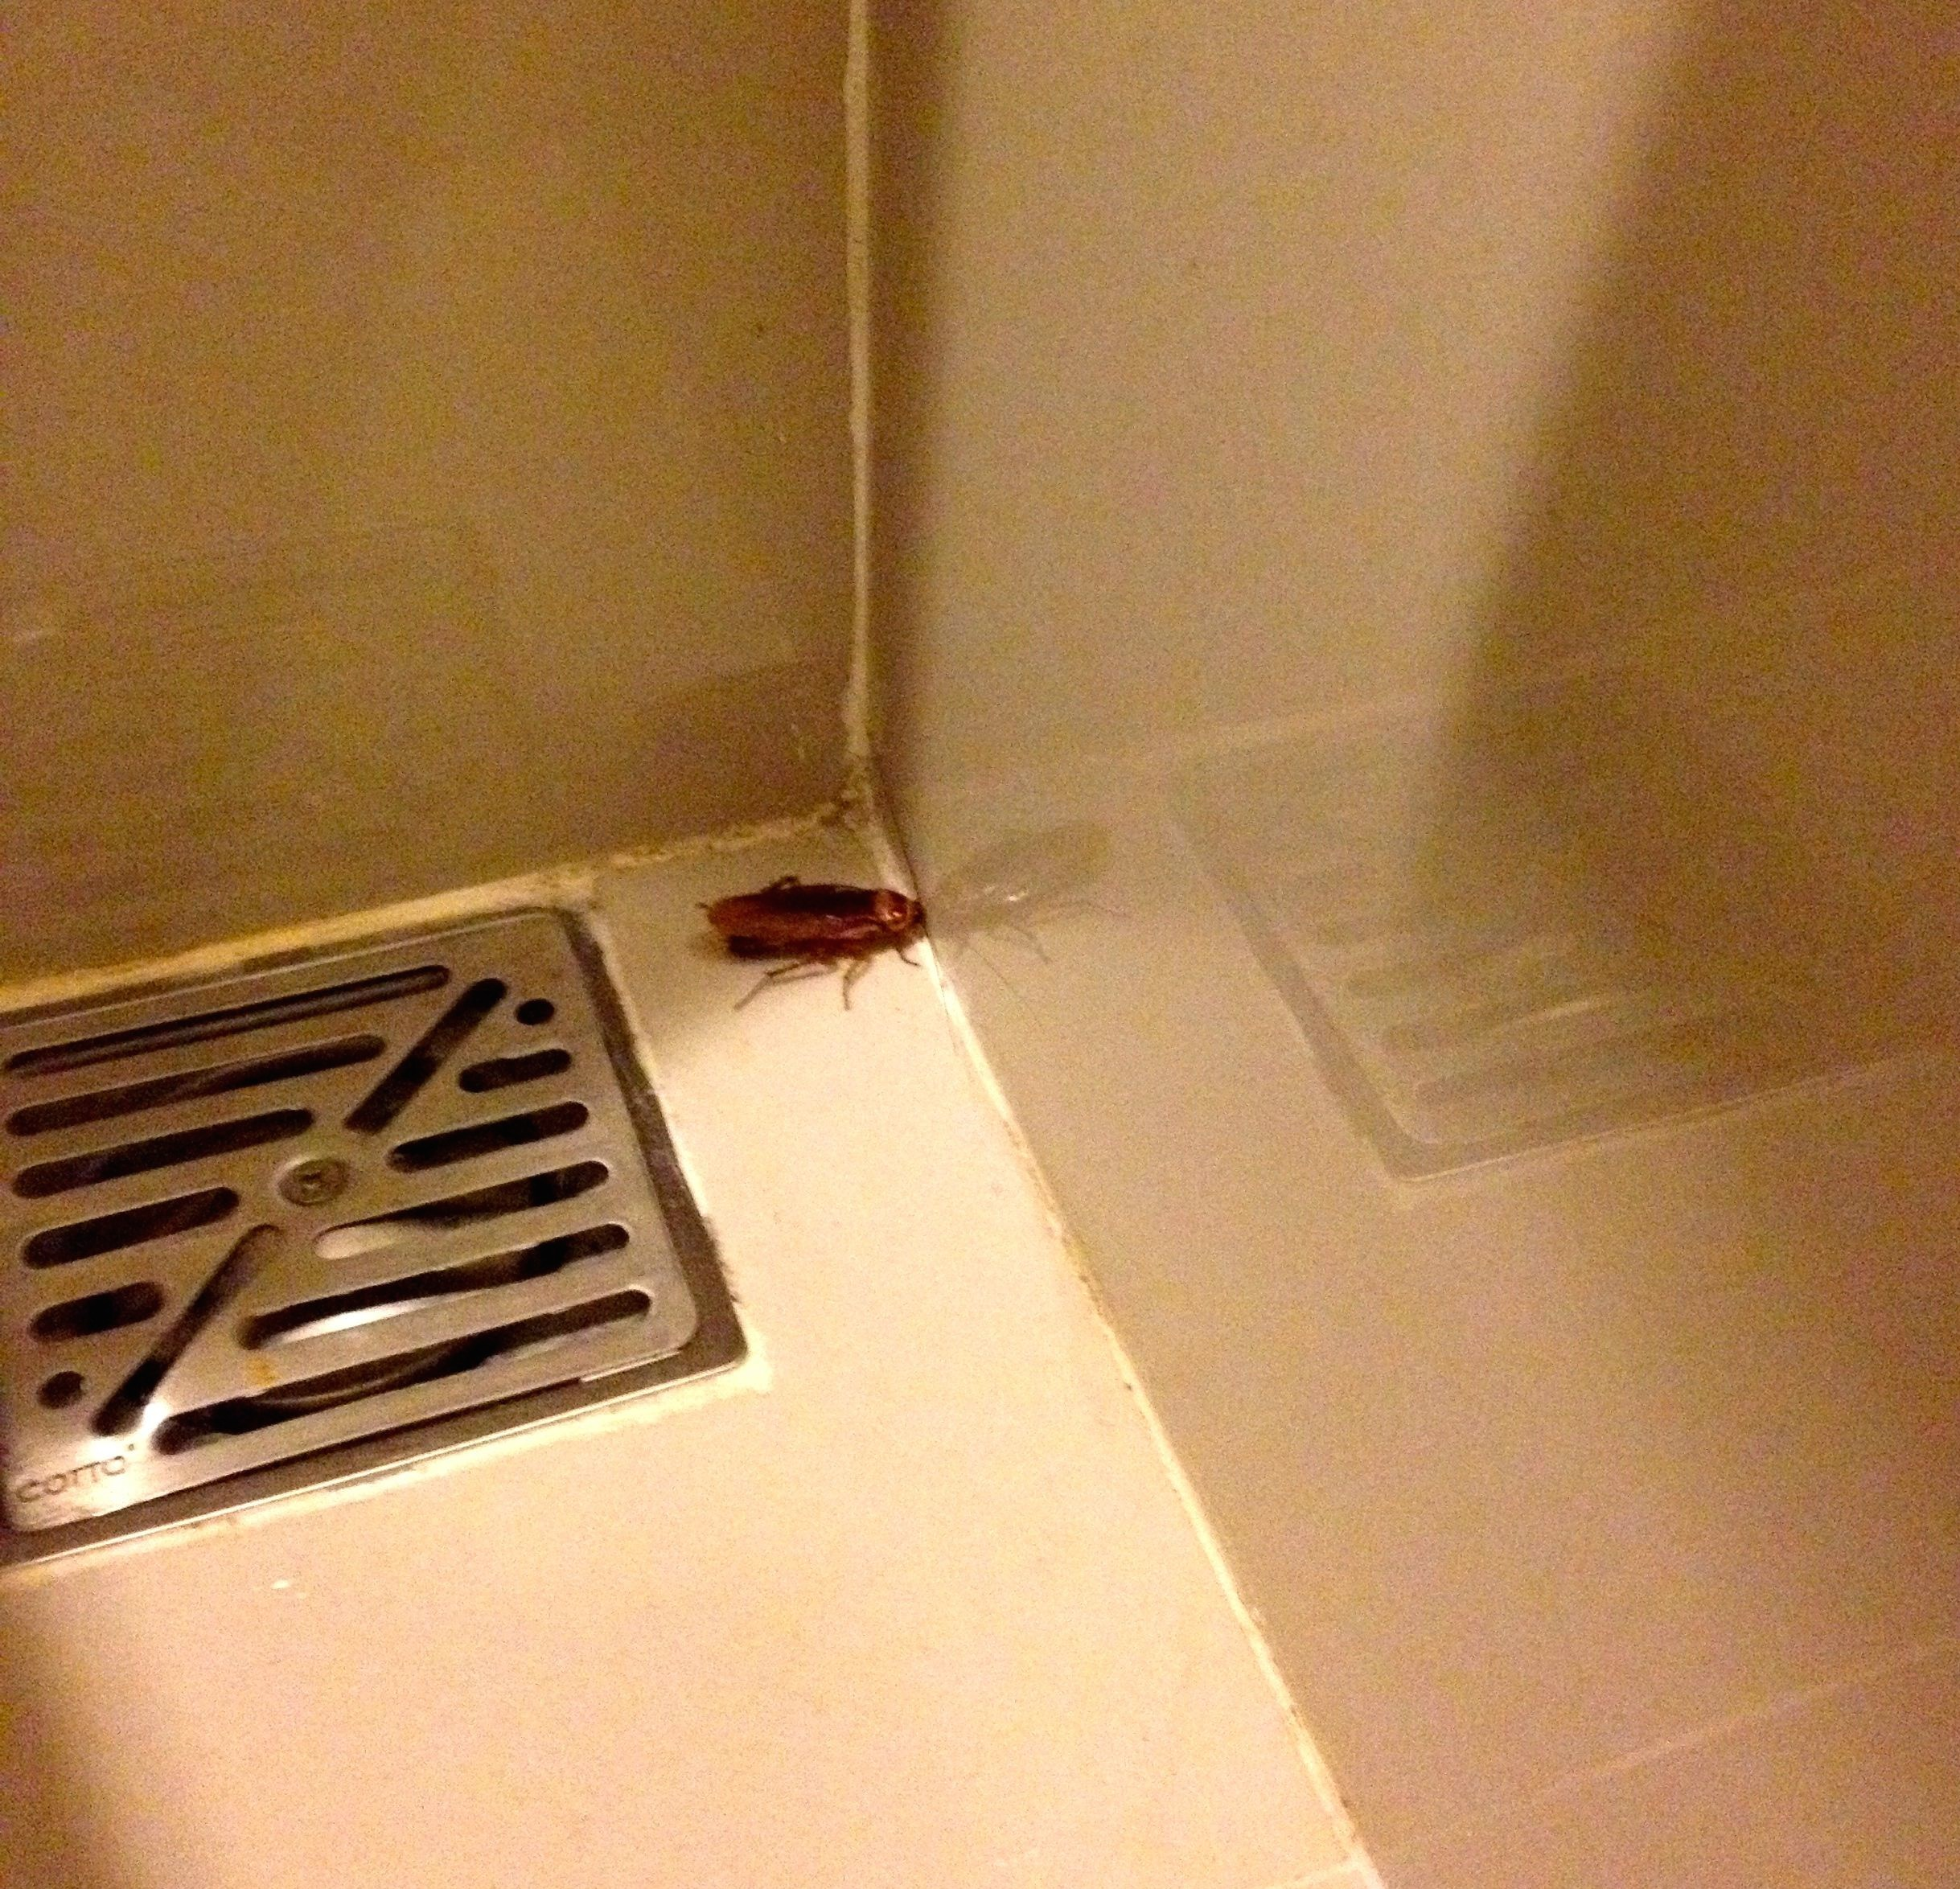 Cockroaches Travel In Packs - Cockroach in bathroom